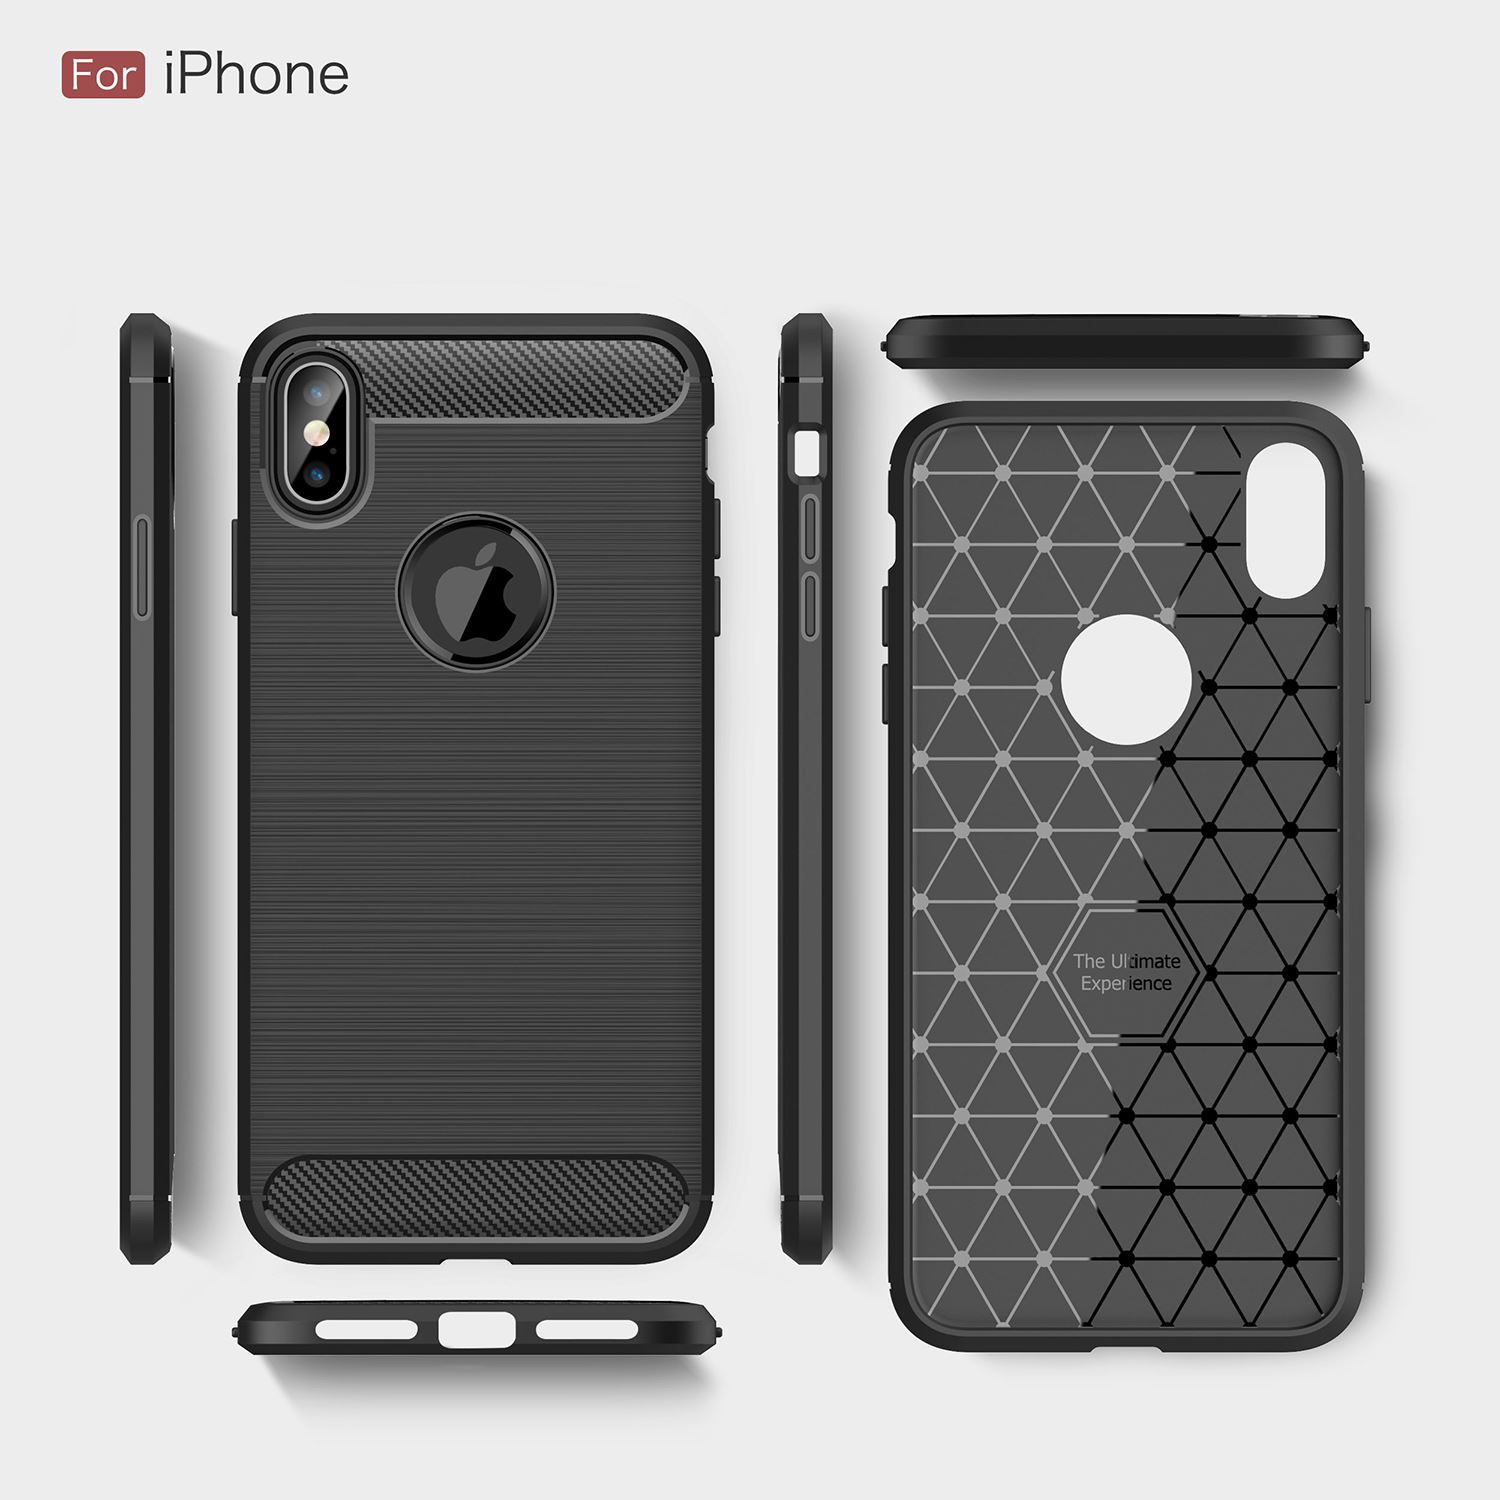 miniature 36 - For Apple iPhone XR Xs Max X 8 7 Plus 6 5 Se 2020 Case Cover New Phone Proof